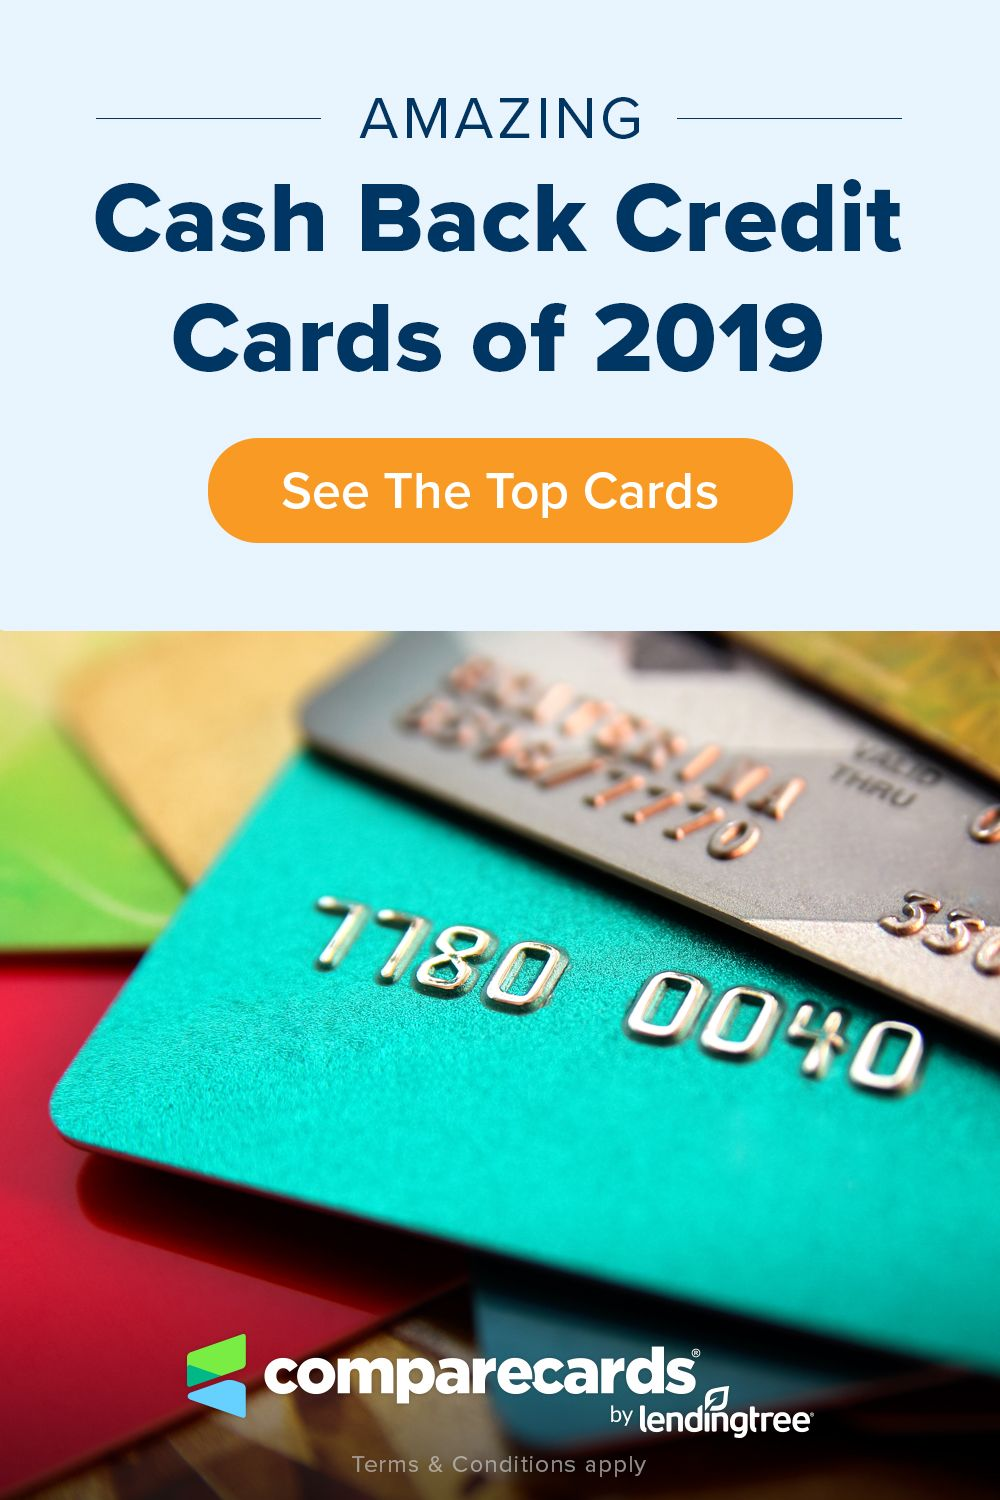 Check out these top cash back credit cards cards